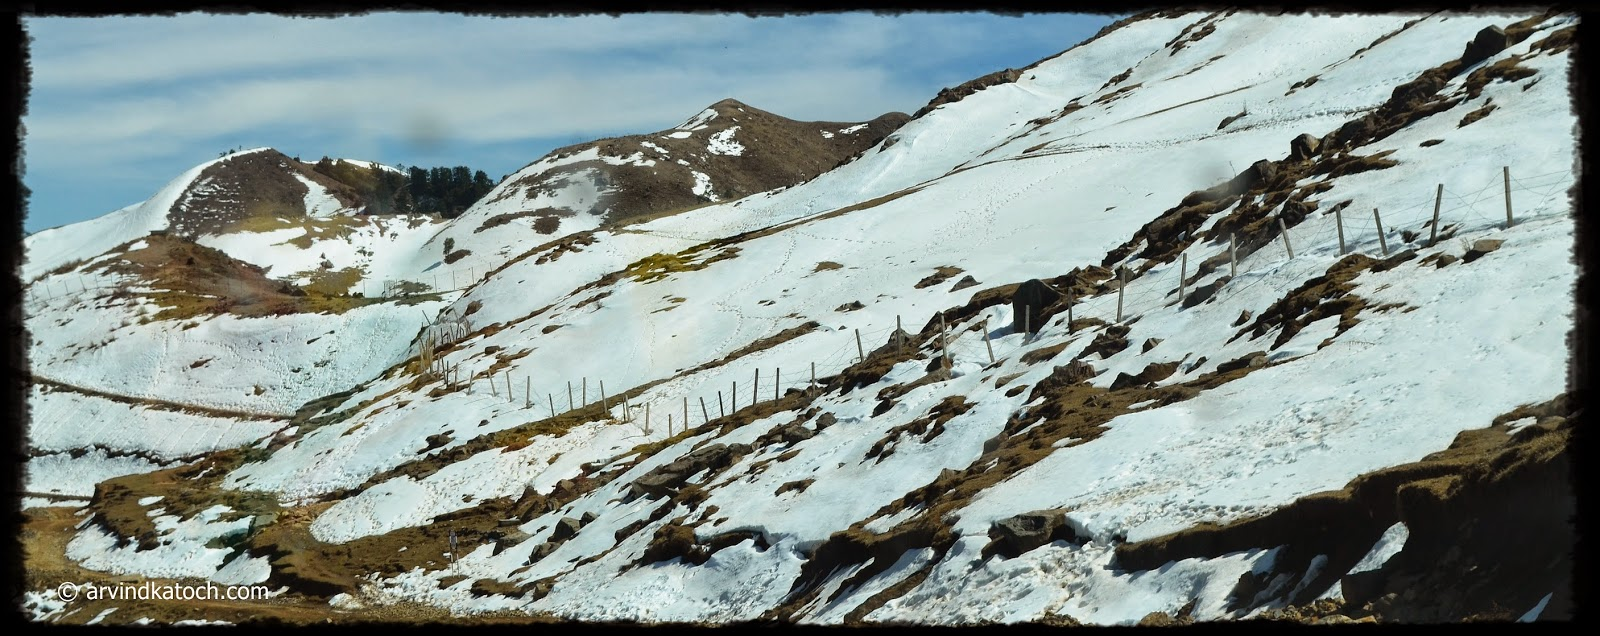 Snow, Prashar Lake